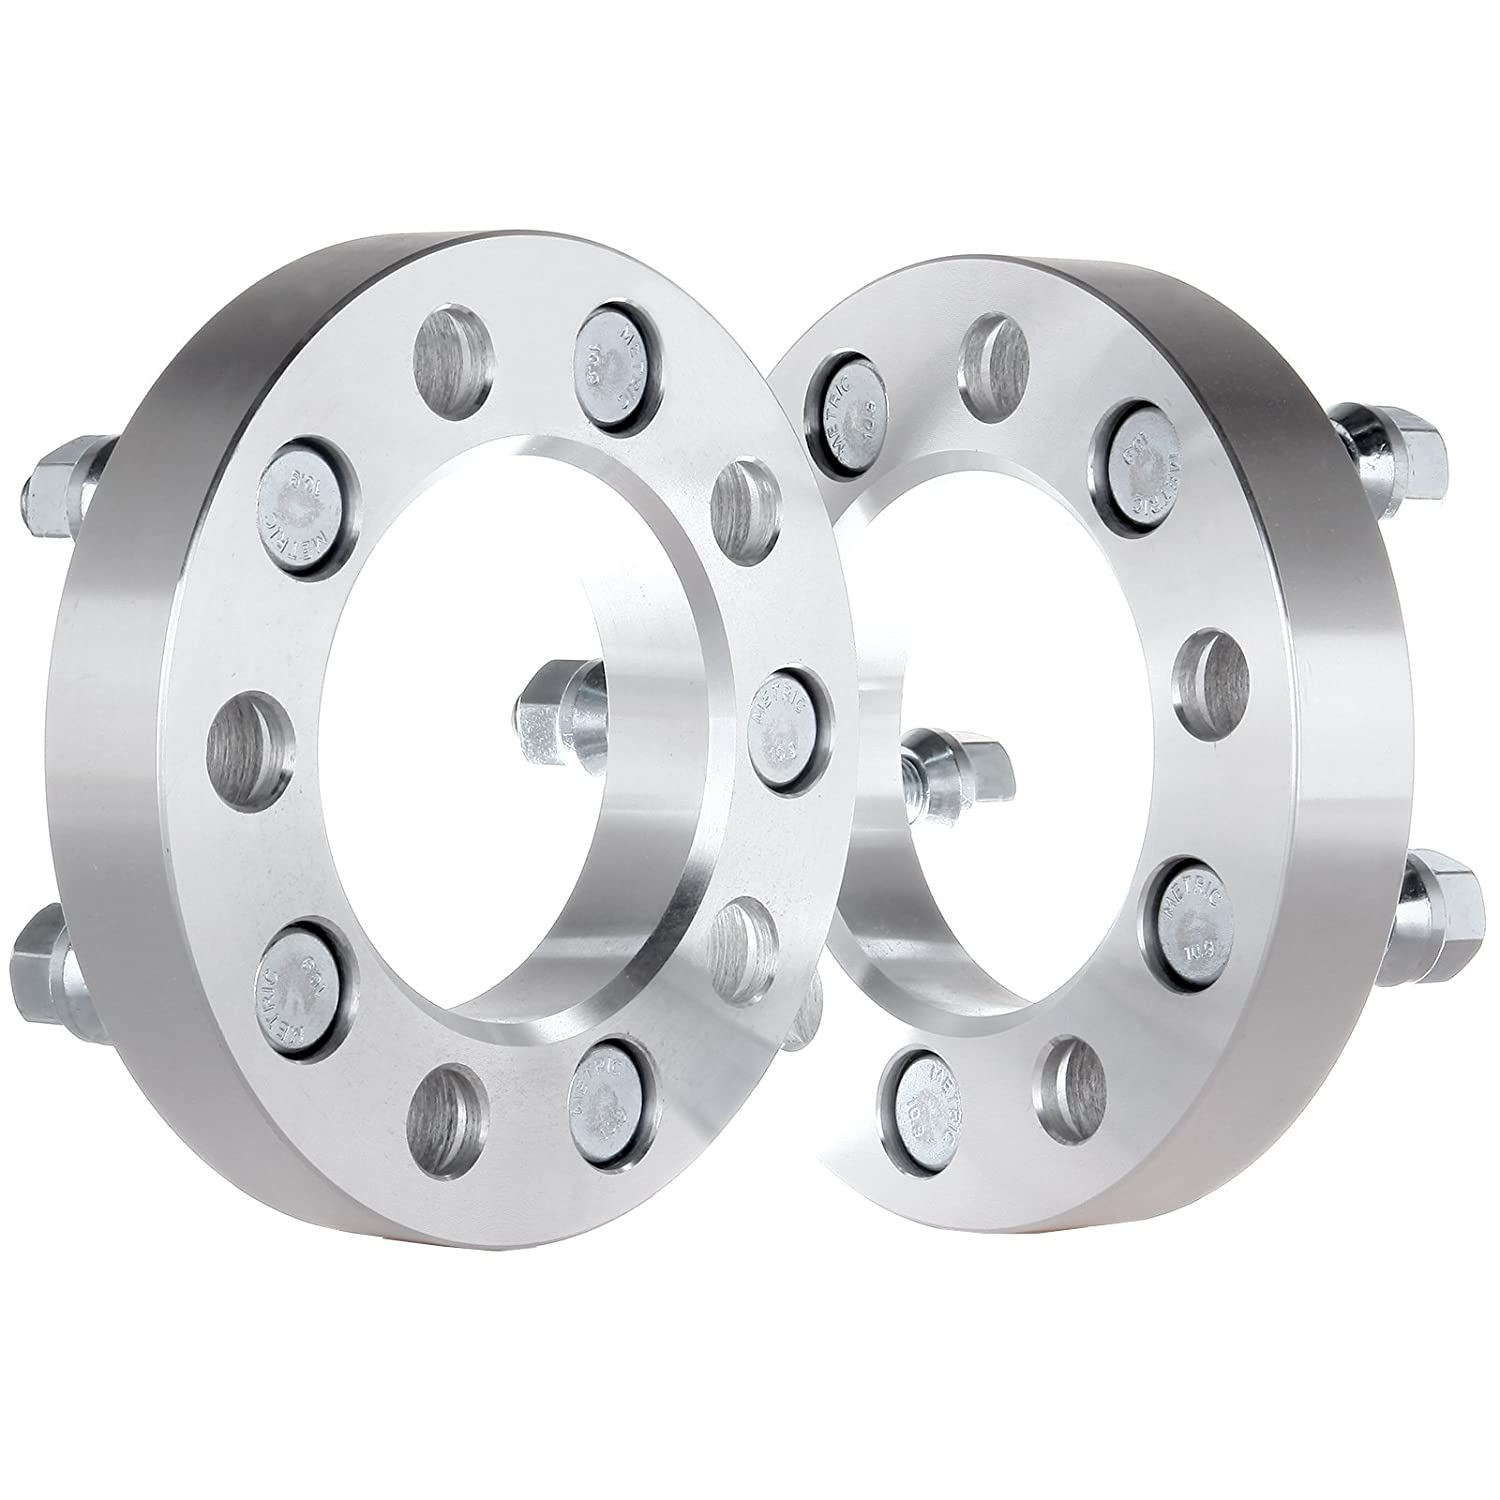 ECCPP 5x100 to 5x112 Wheel Spacers Adapters 1' 5x100mm to 5x112mm | 57.1 H.B 4X for Subaru Forester Legacy Outback Impreza 2003-2015 with Conversion Studs 12x1.5 BHBU0503A4657